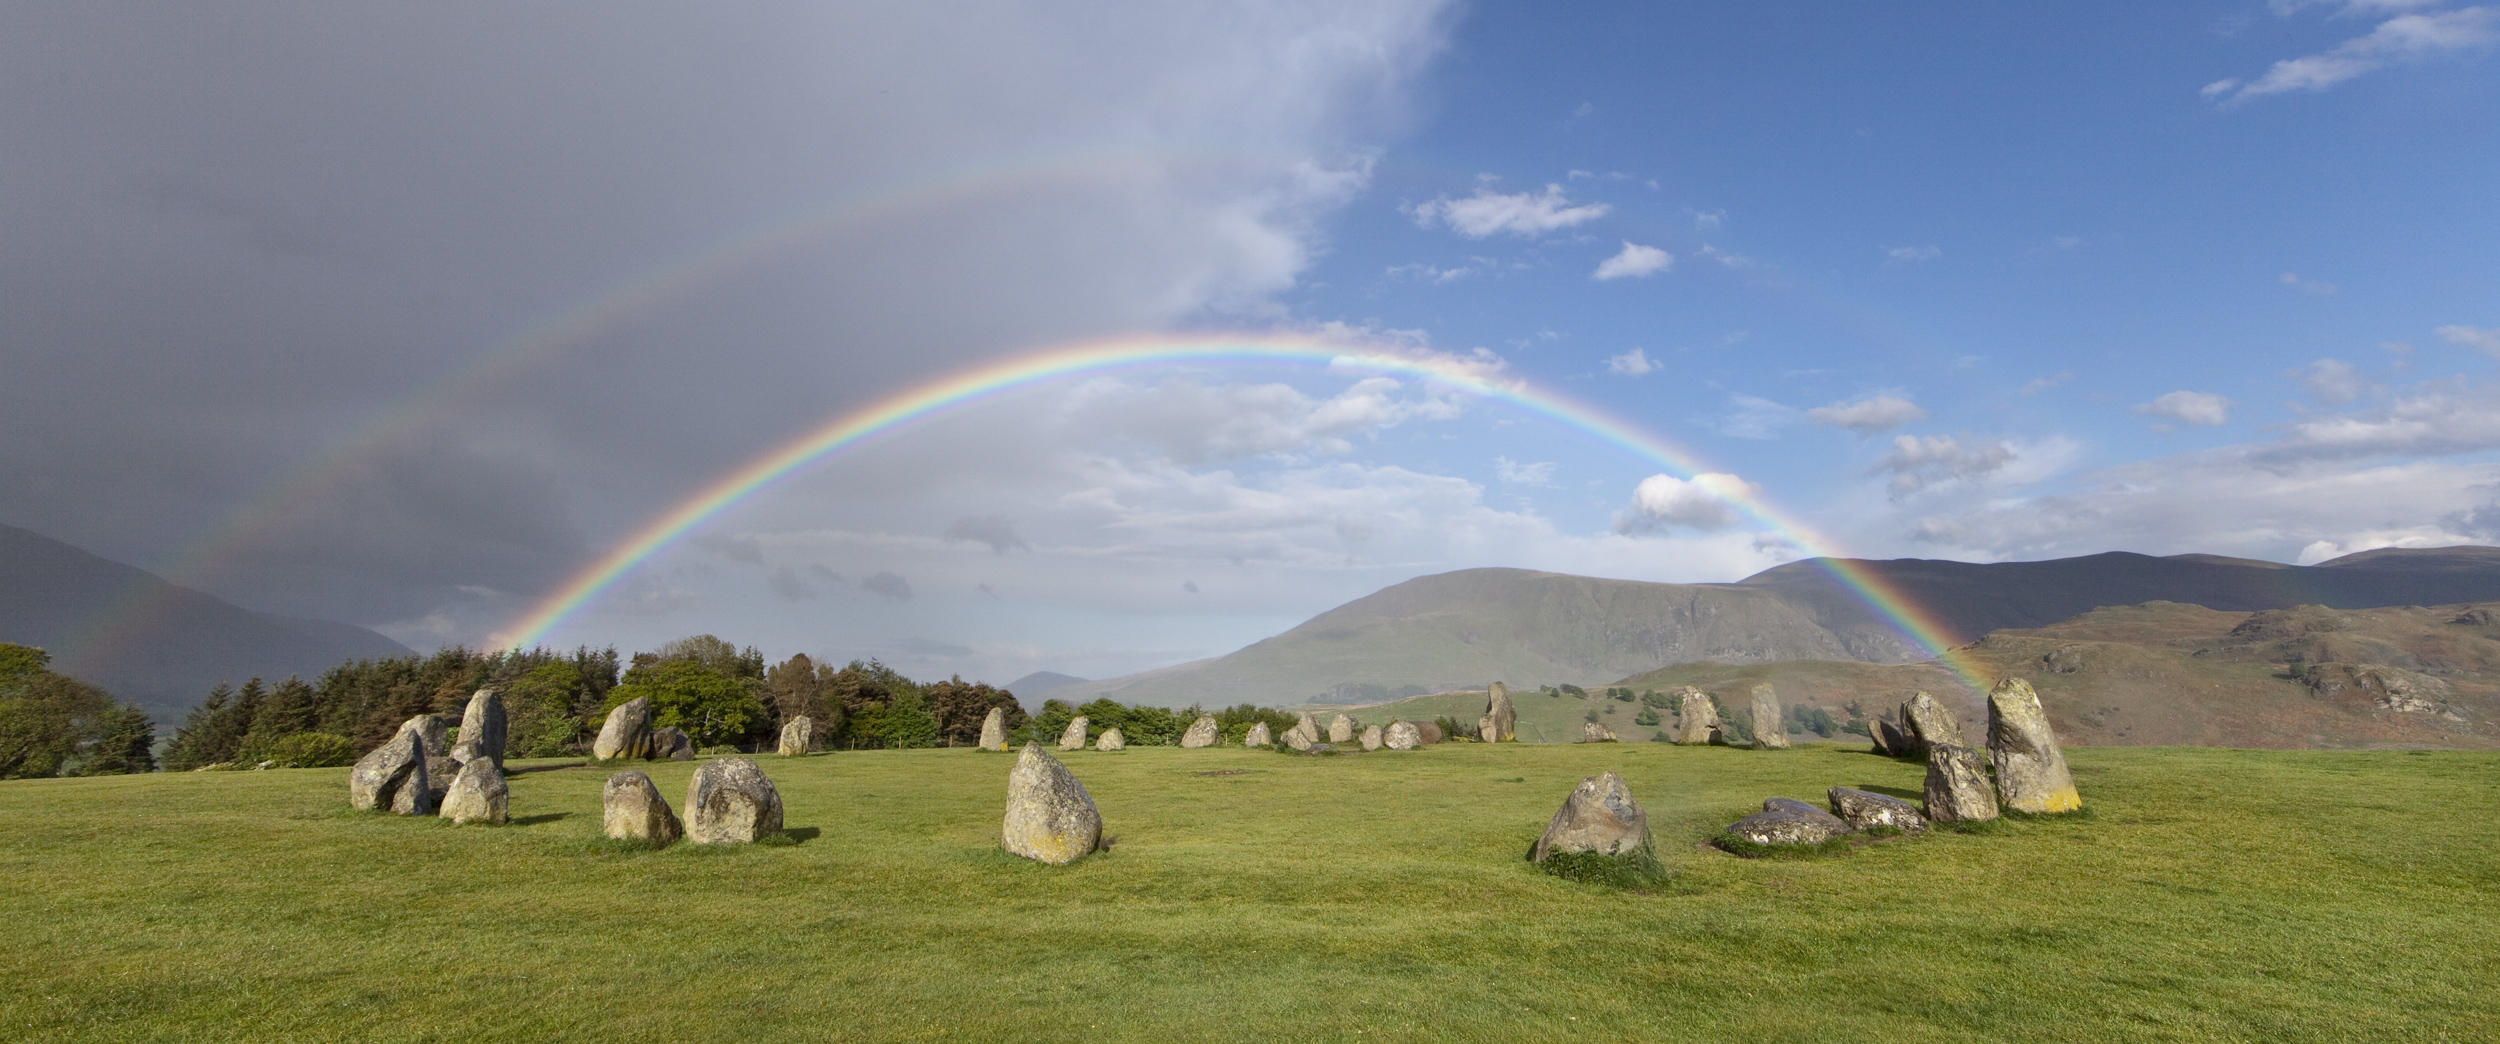 Just after a heavy shower, rainbow at Castlerigg Stone Circle, Keswick